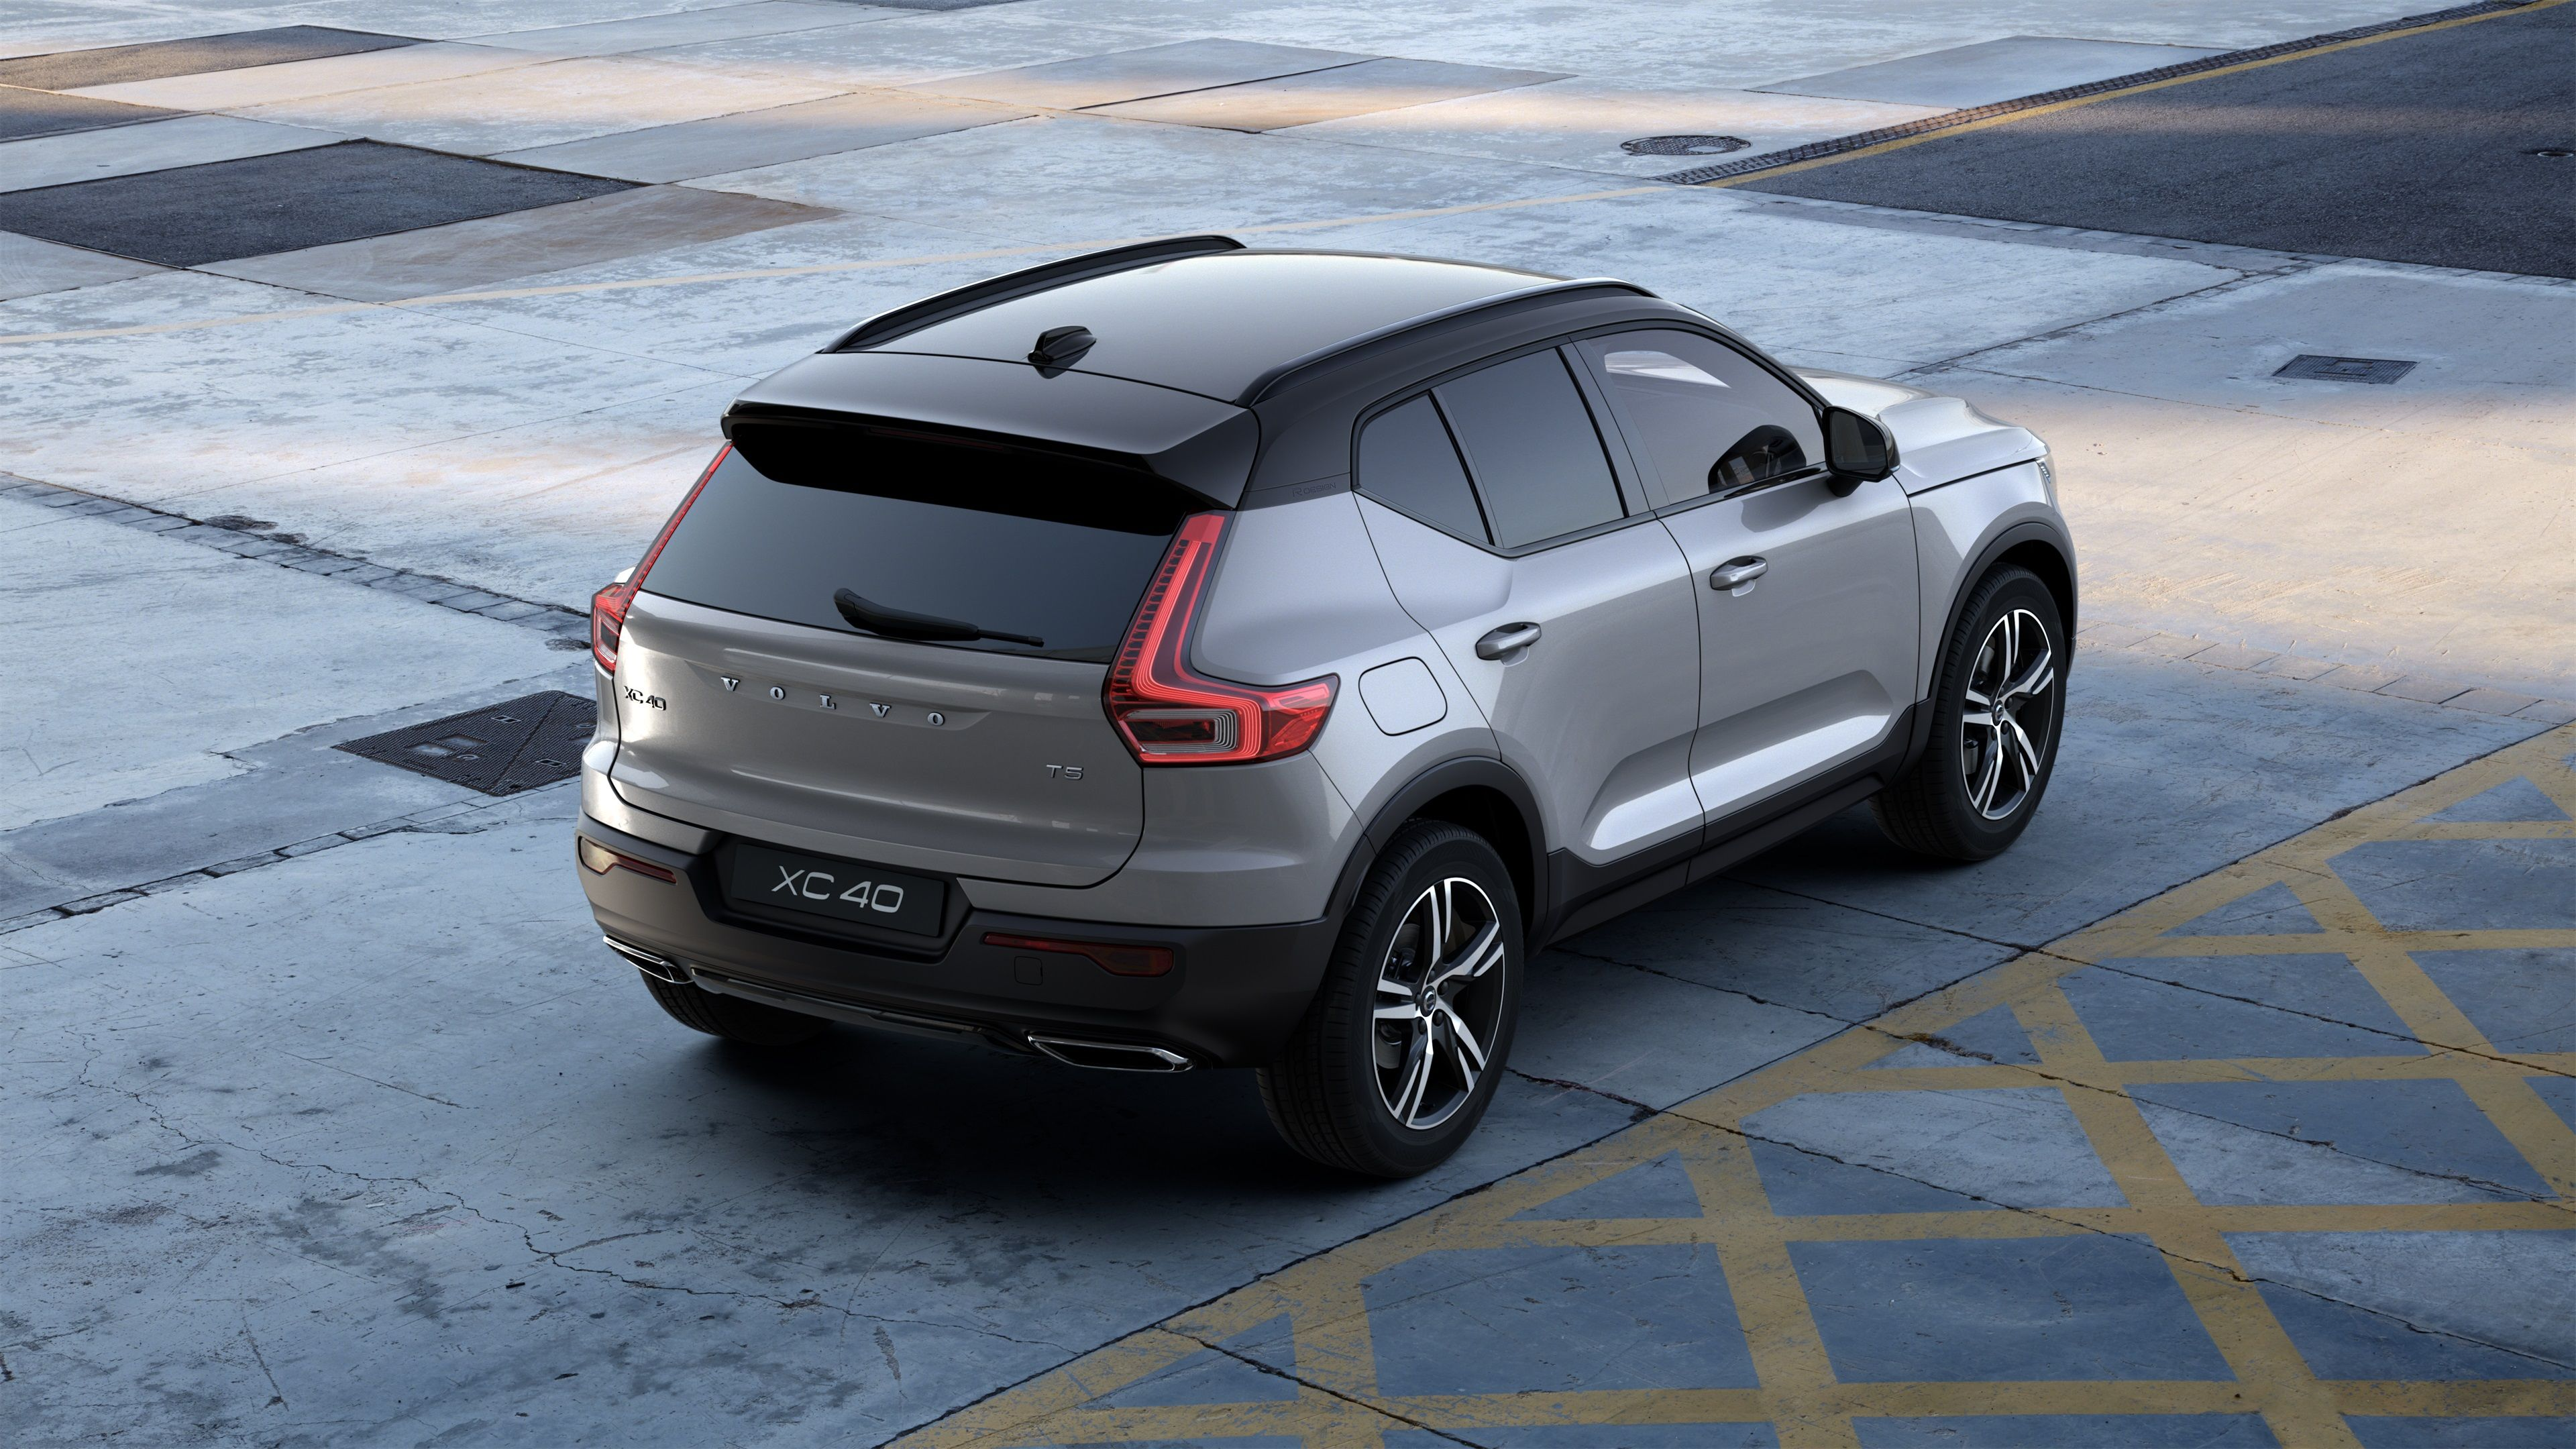 xc40 r design t5 awd vehicles volvo volvo cars jeep cars. Black Bedroom Furniture Sets. Home Design Ideas